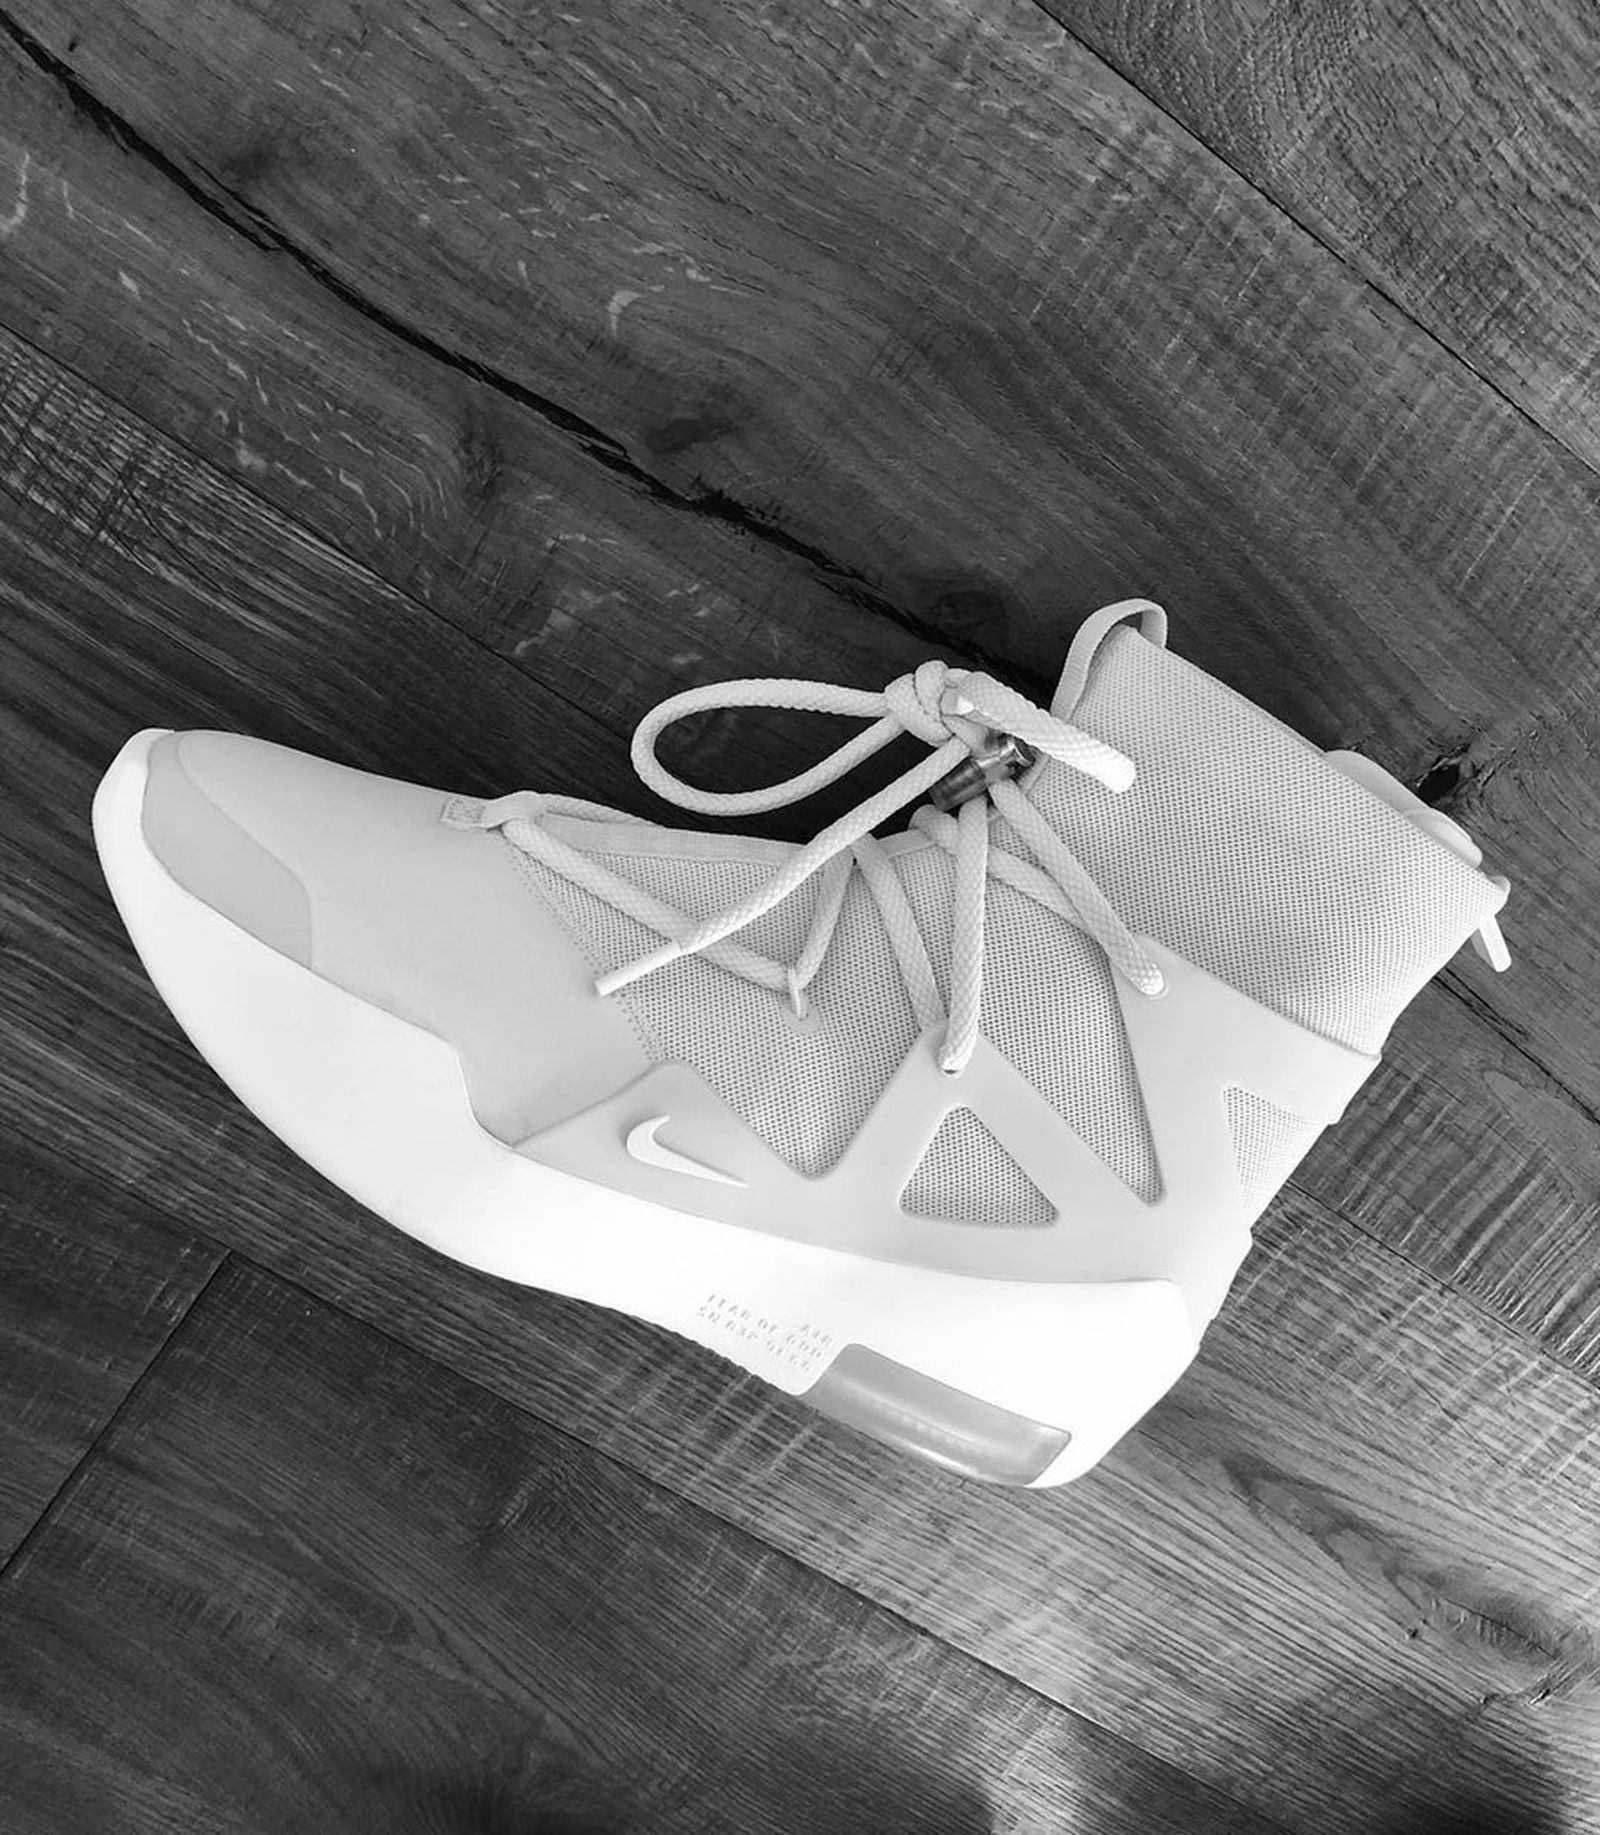 Aprobación Ordenanza del gobierno Atar  Jerry Lorenzo Gives us Another Glimpse of Fear of God x Nike Shoe